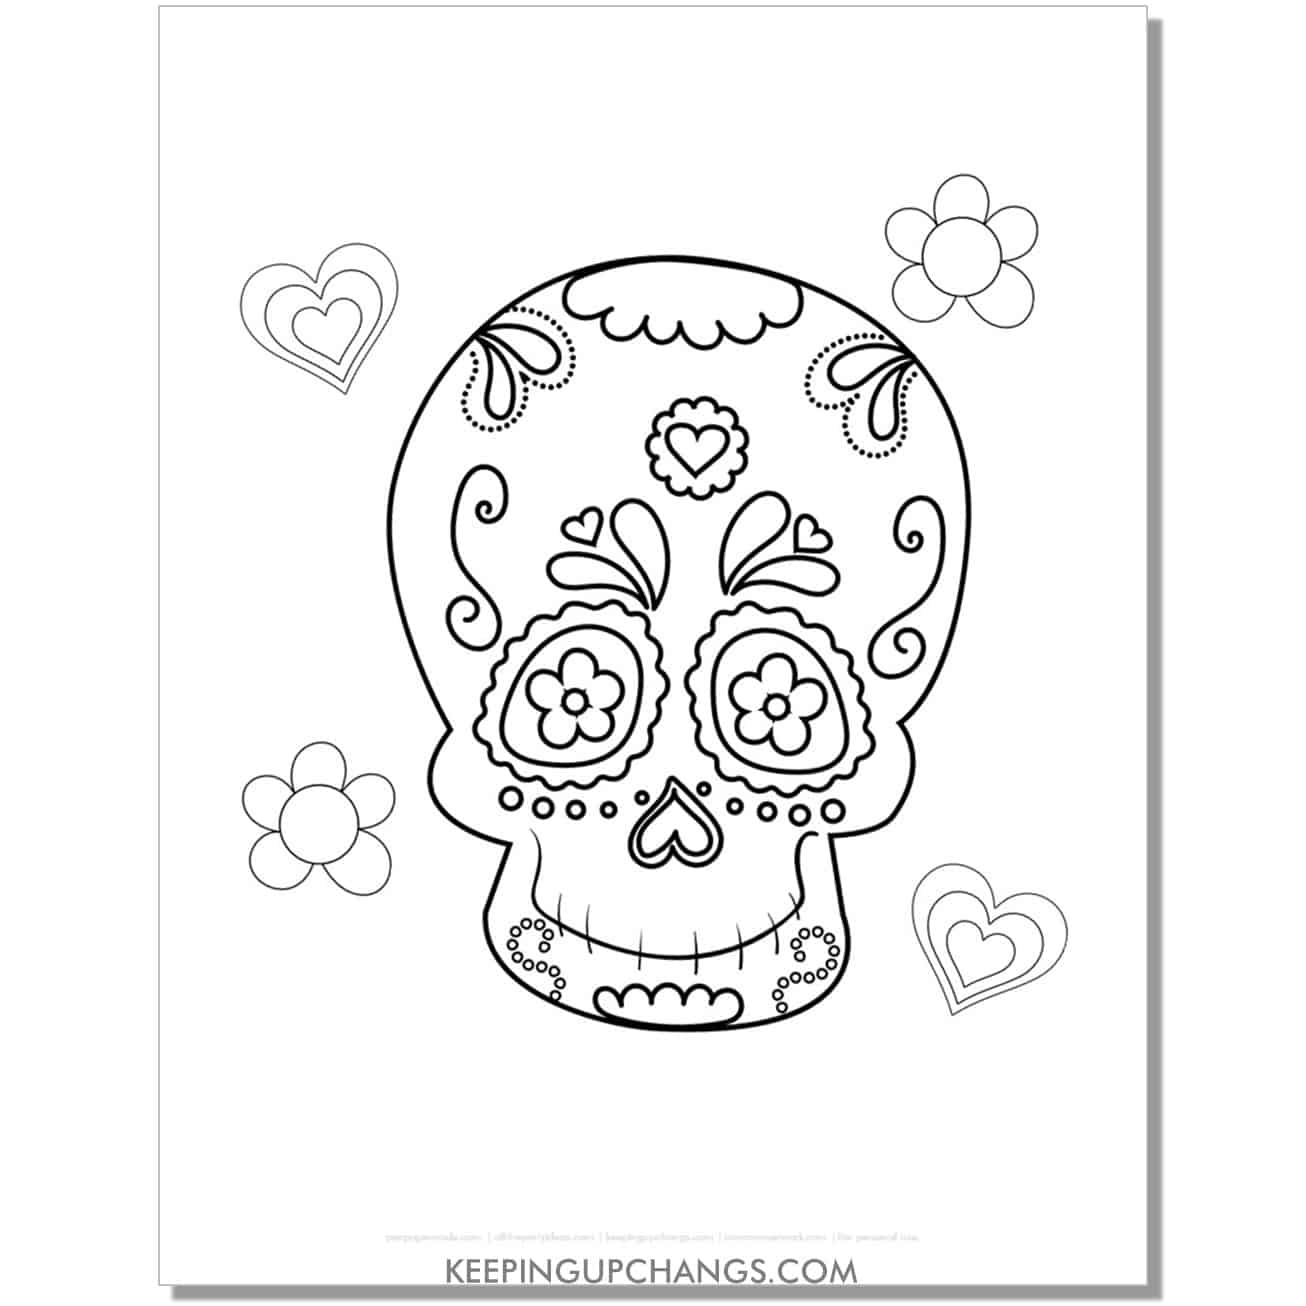 free day of the dead male sugar skull for kids coloring page.